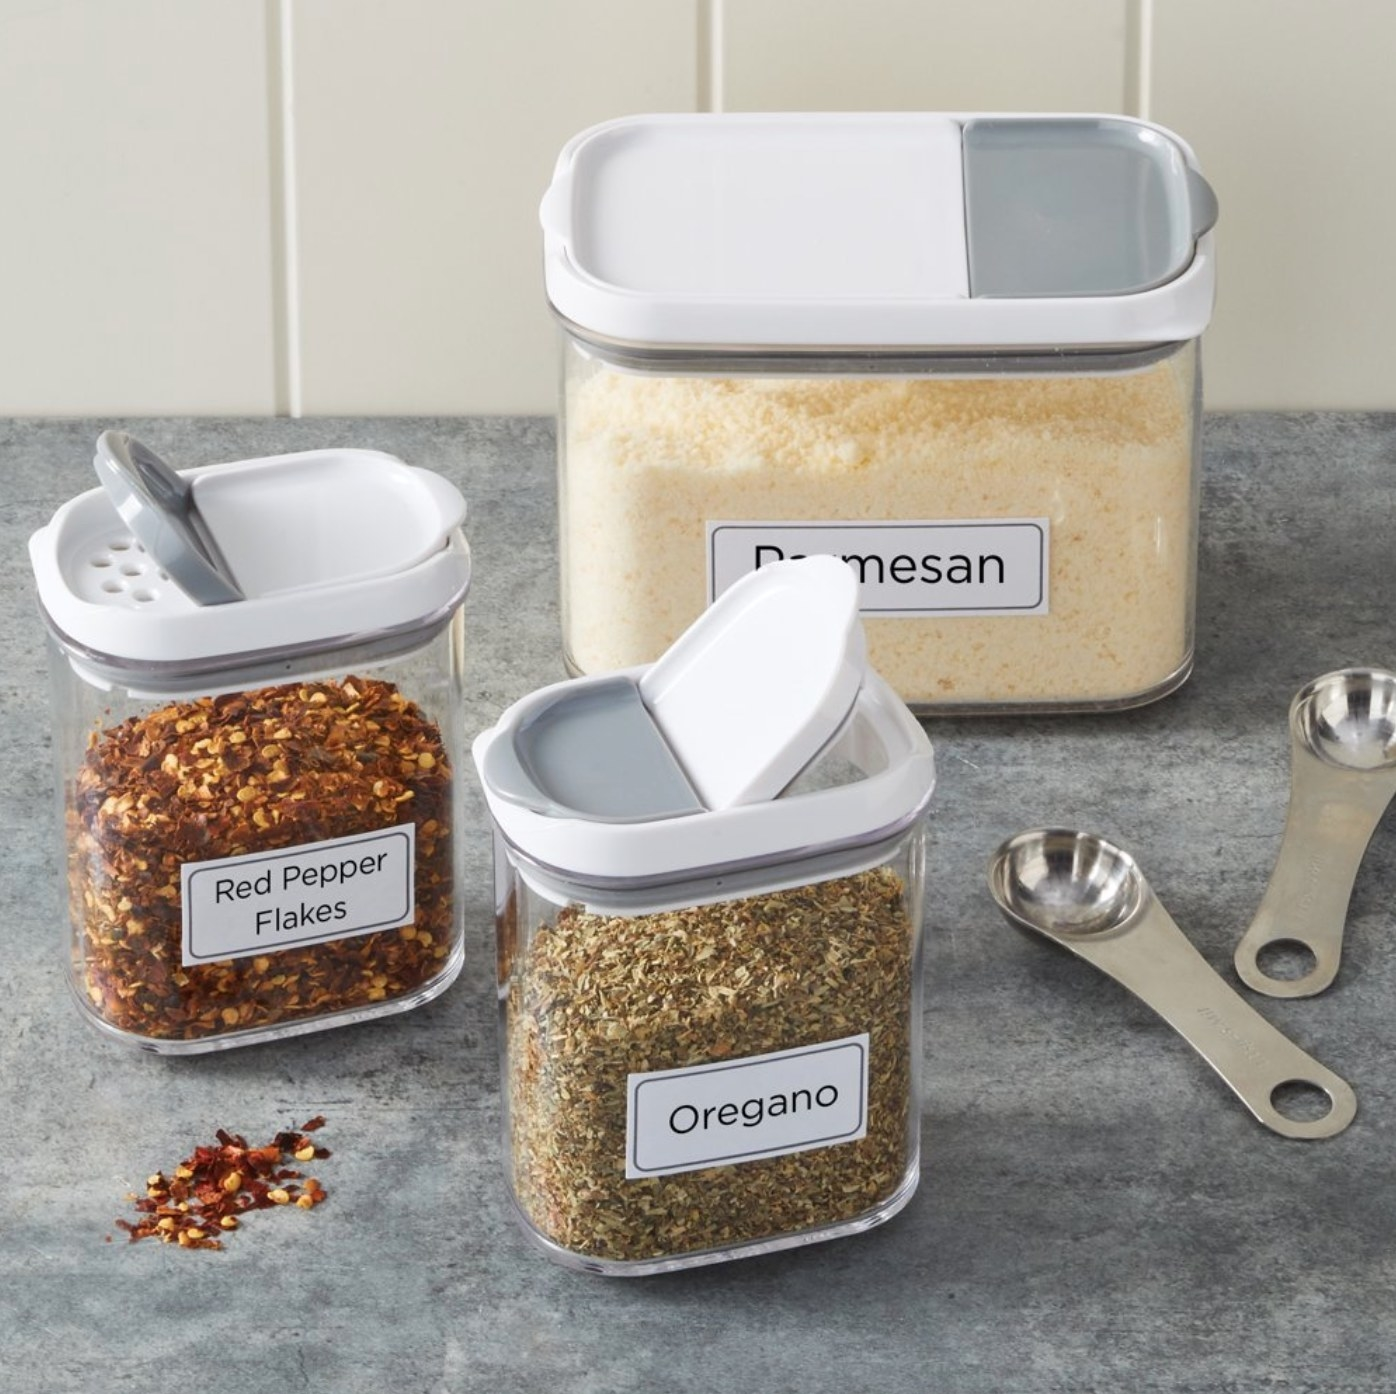 The shaker canister set